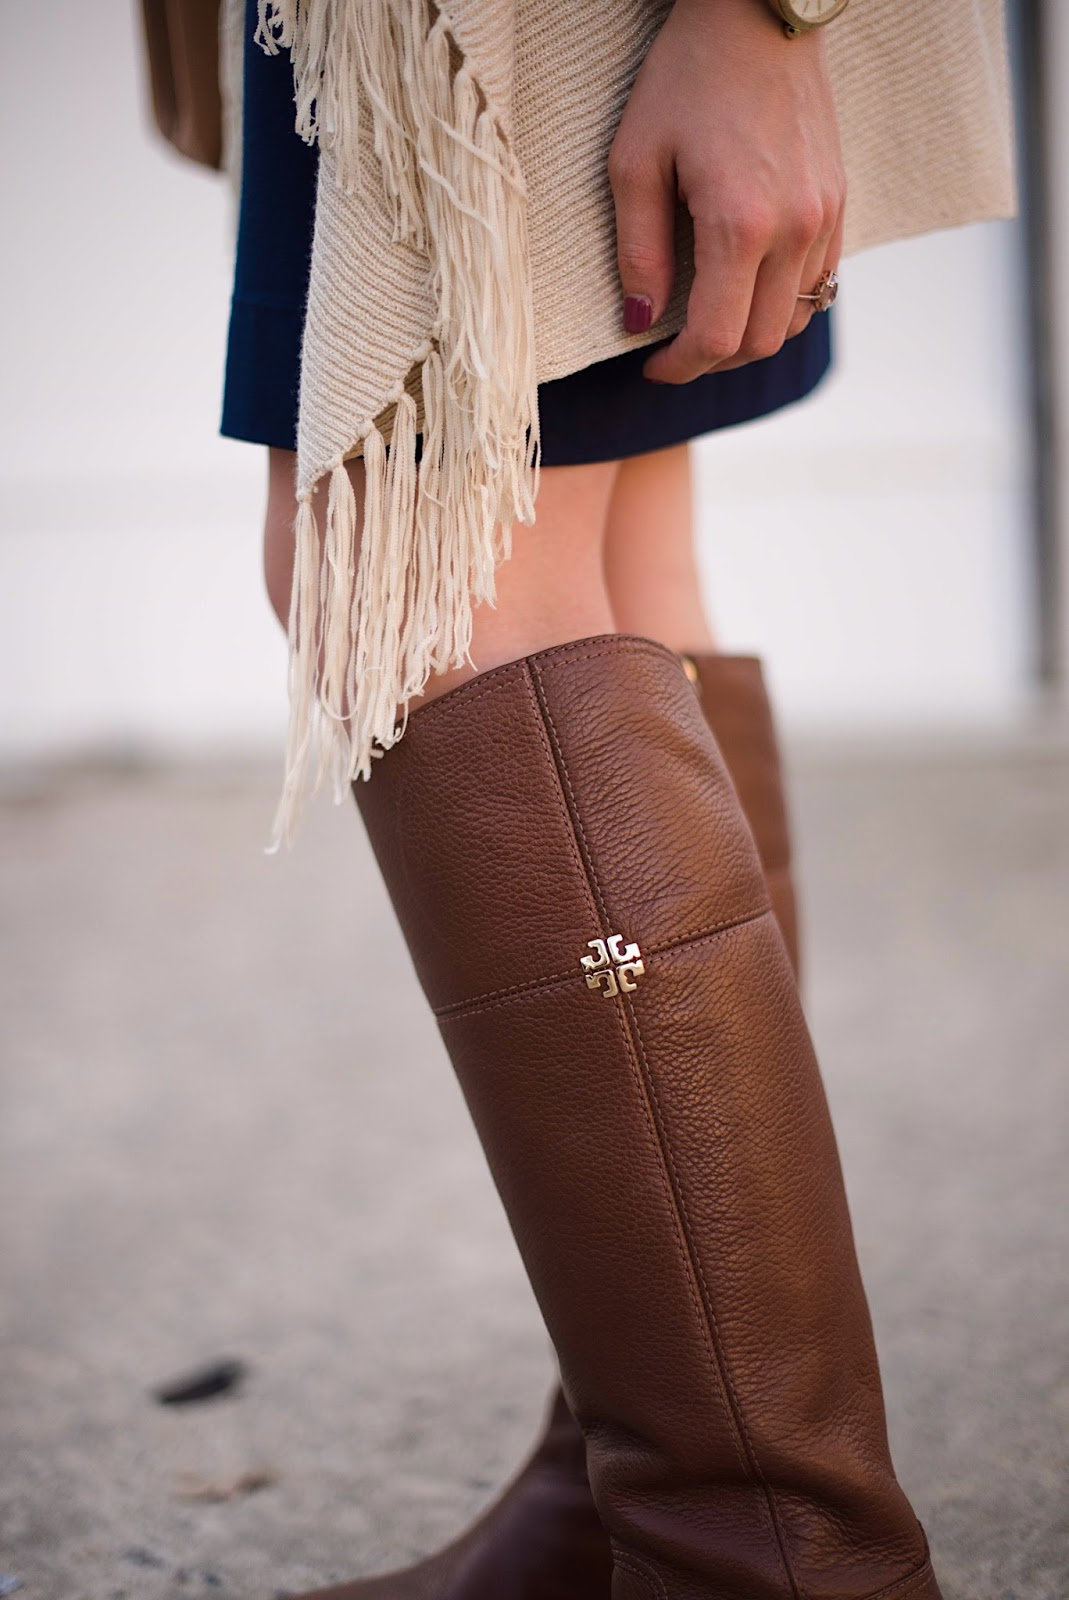 Tory Burch Riding Boots - Rachel Timmerman of Something Delightful Blog